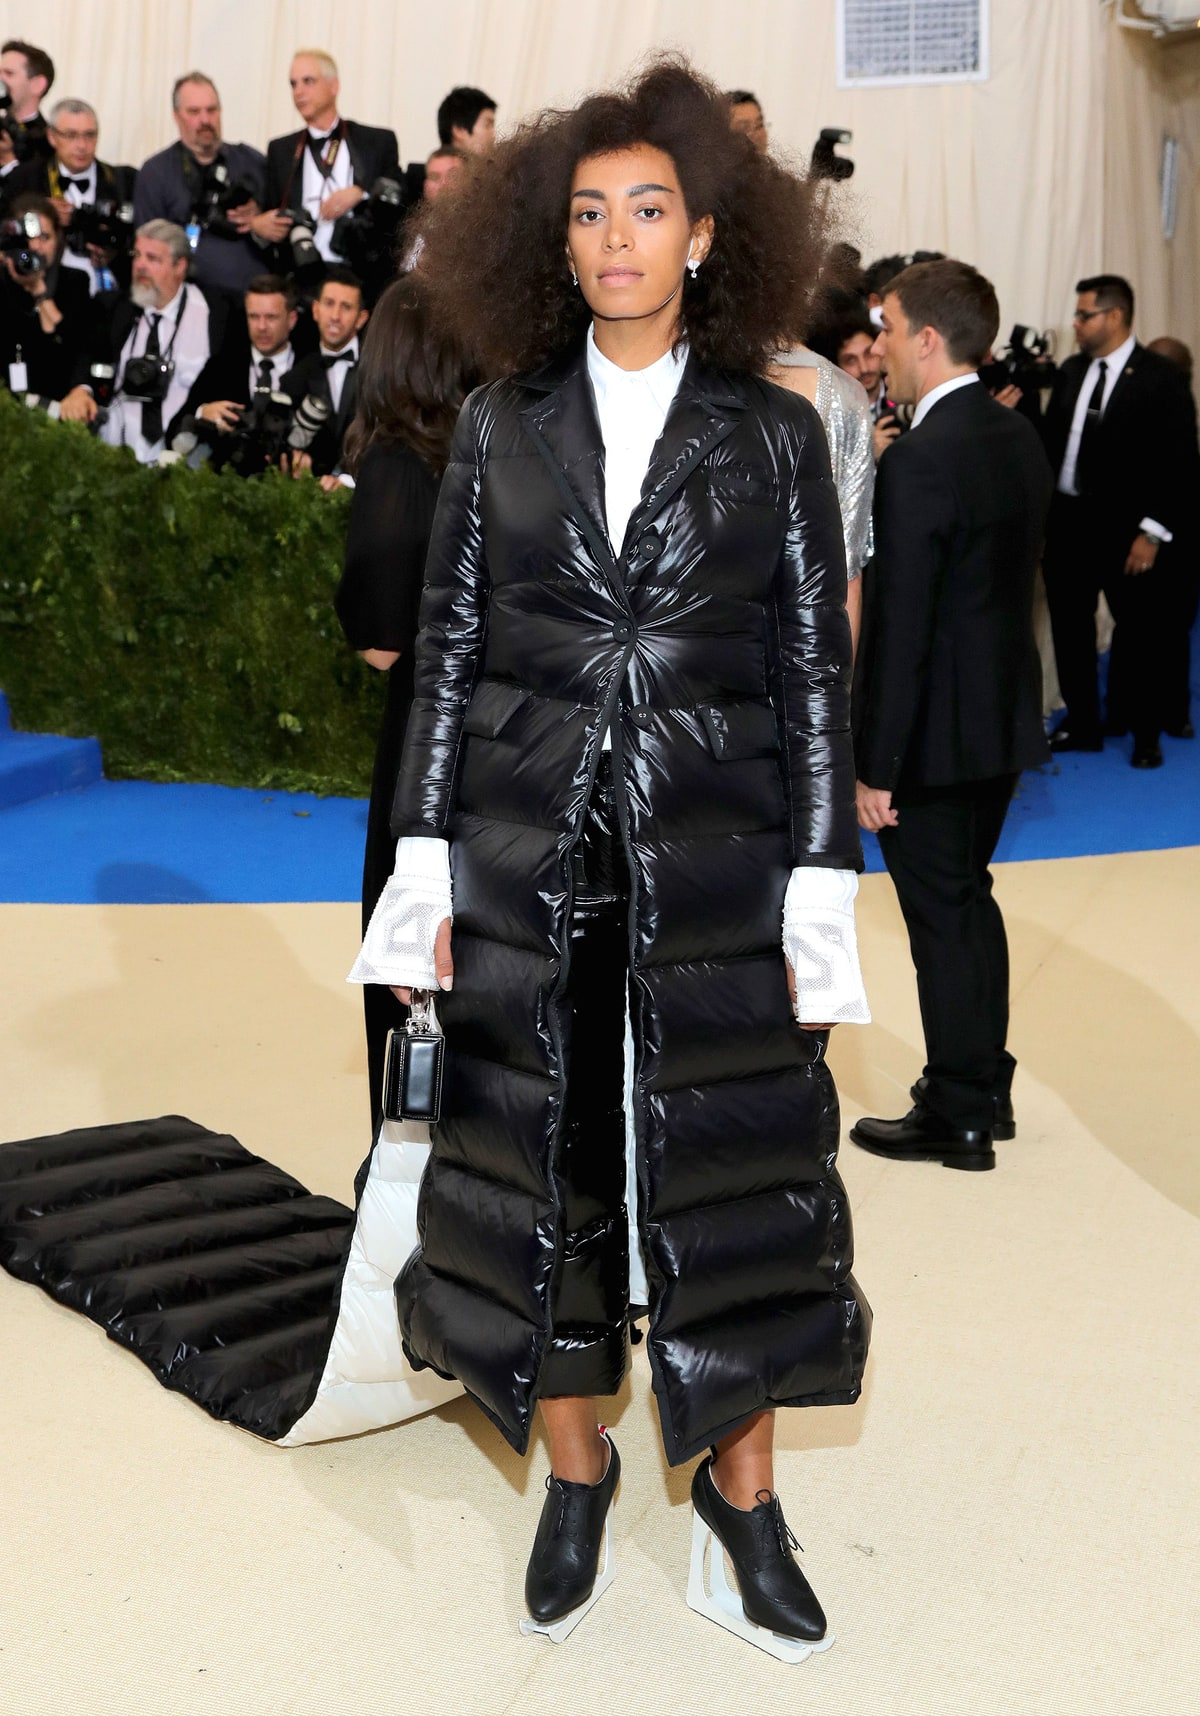 Solange Knowles   in Thom Browne.  I know New York may be colder than most places in the country but you can never use that as an excuse to have a down jacket train with matching ice skates. She has one of the world's most beautiful bodies under there and we would never know it.